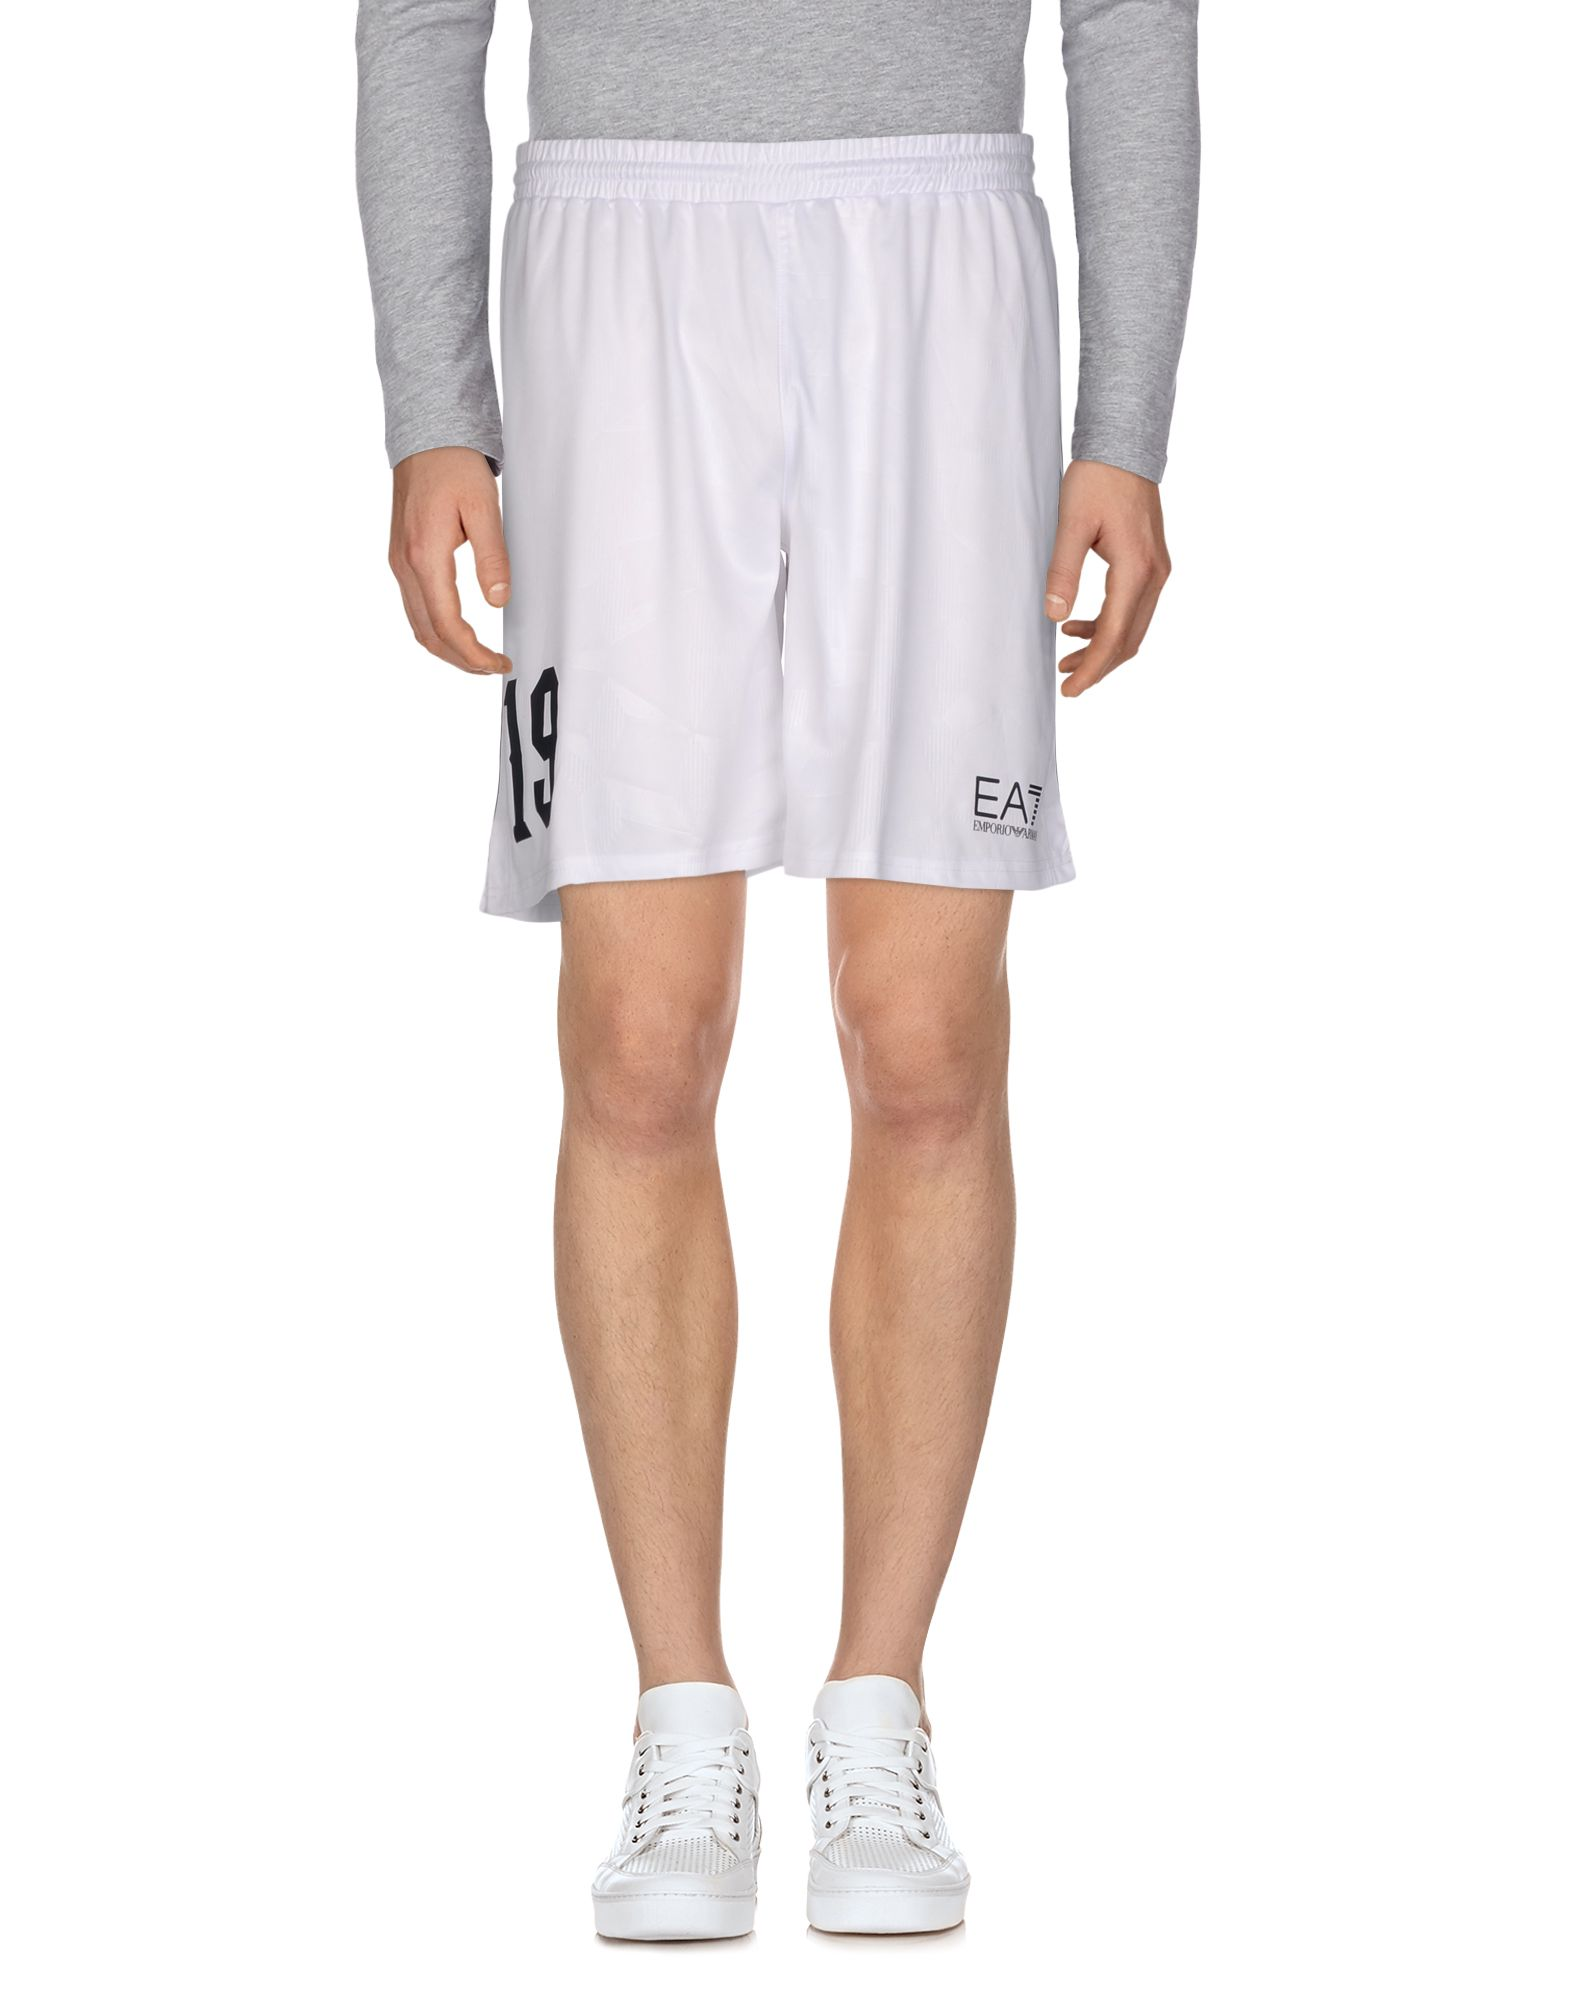 EA7 Shorts & Bermuda in White